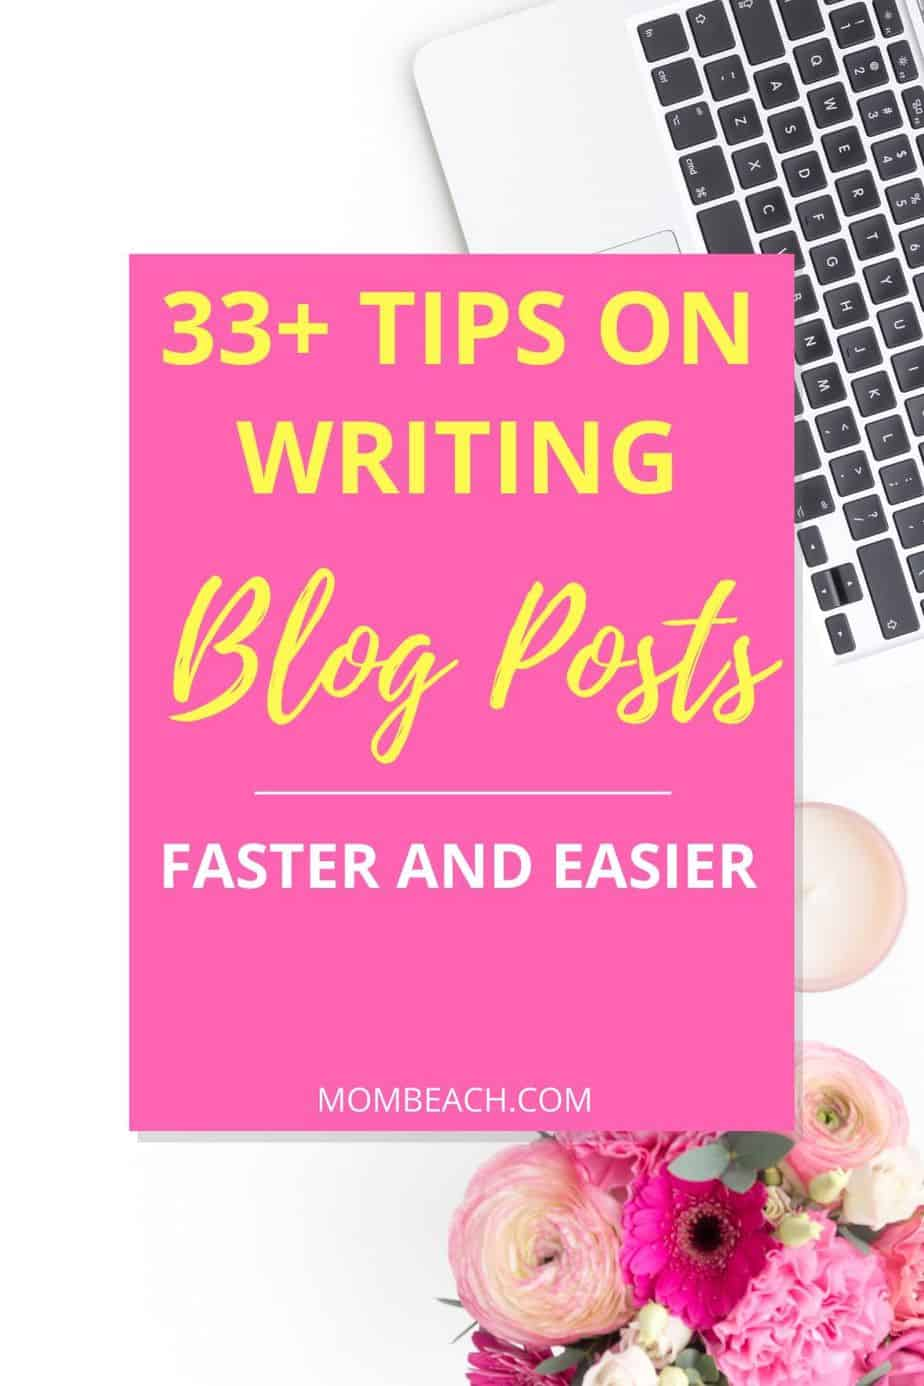 Do you need help on how to write blog posts faster and easier? These 33+ tips and hacks will have you writing blog posts faster and quicker in no time at all. Write blog posts better and faster with these hacks. You can get make a mommy blog, travel blog, or any other niche in order to make money online. It is easy to blog for beginners! #writeblogpostsfaster #blogging101 #bloggingtips #blogginghacks #bloggingtipsandhacks